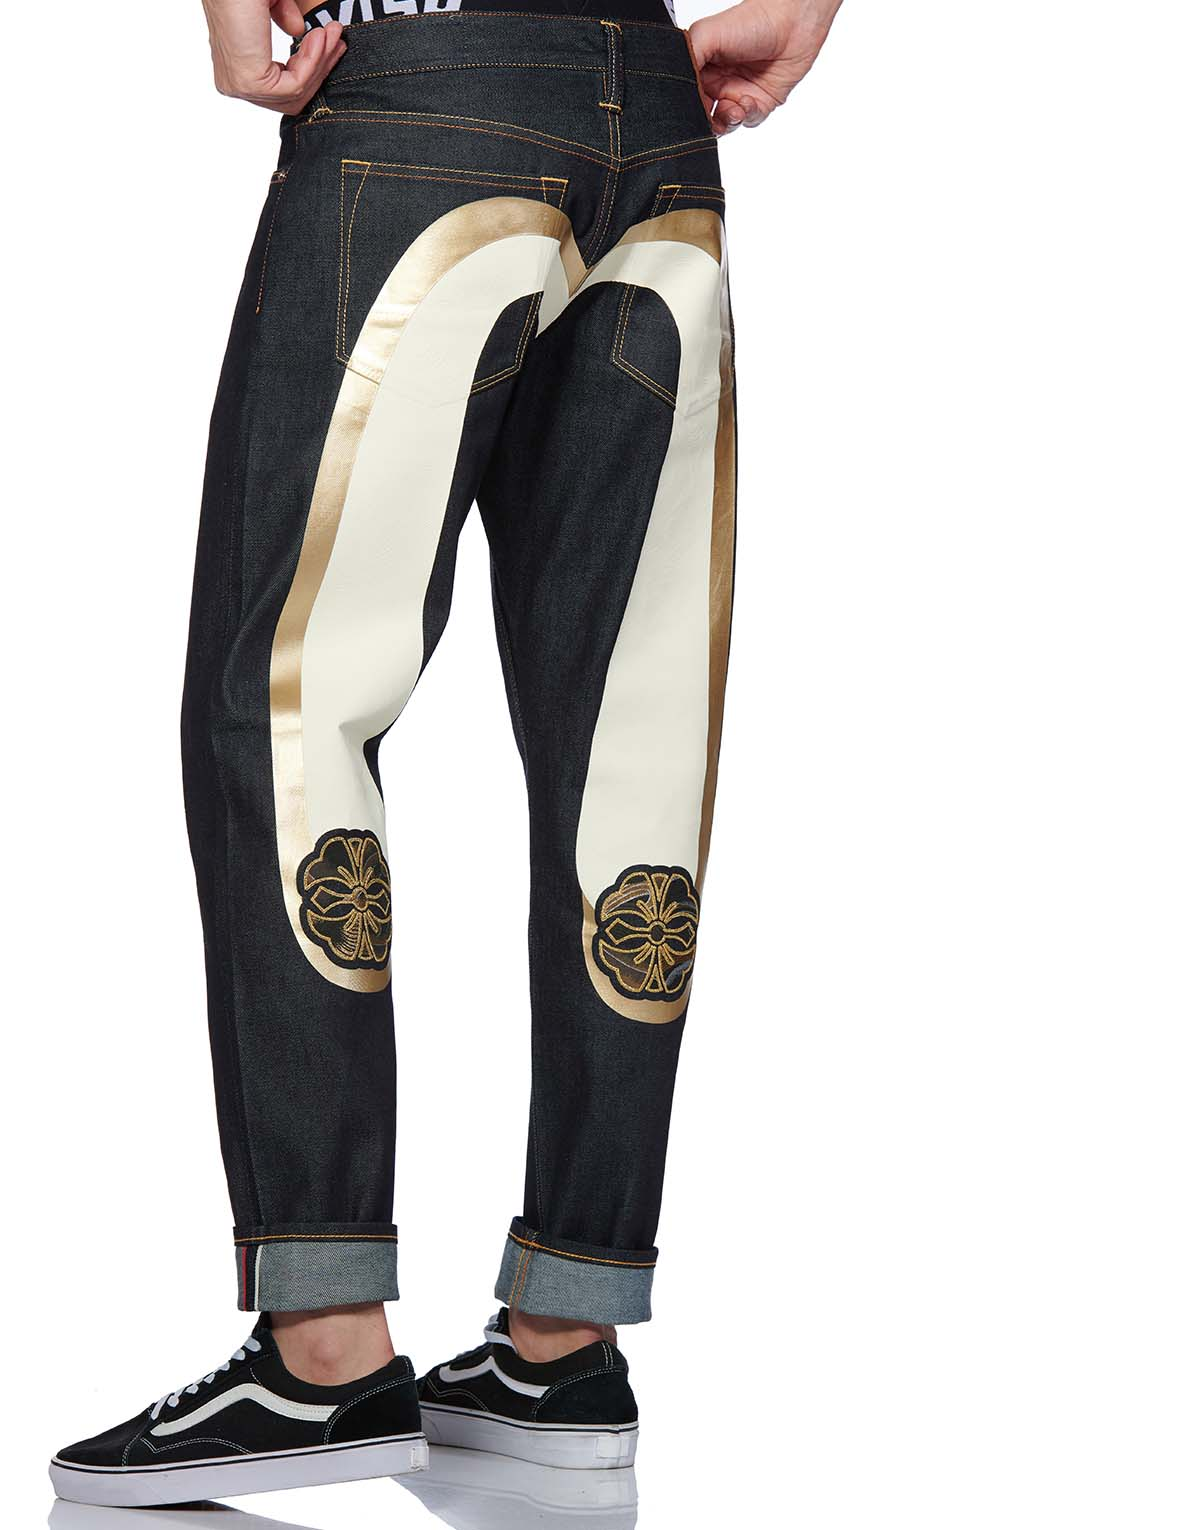 Kamon Brocade Appliqué and Double Daicock Printed 2017 Carrot Fit Jeans